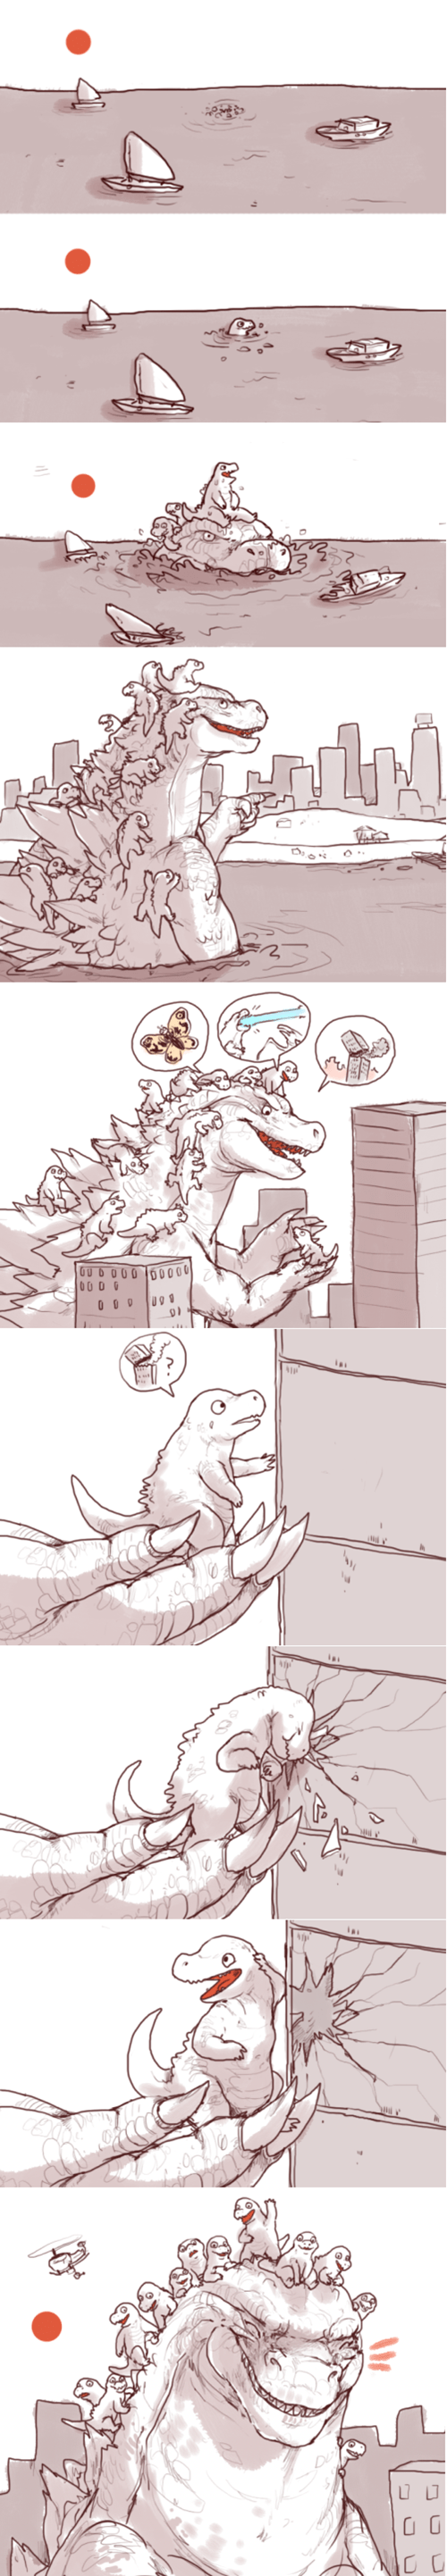 dads,godzilla,kaiju,win,web comics,monster